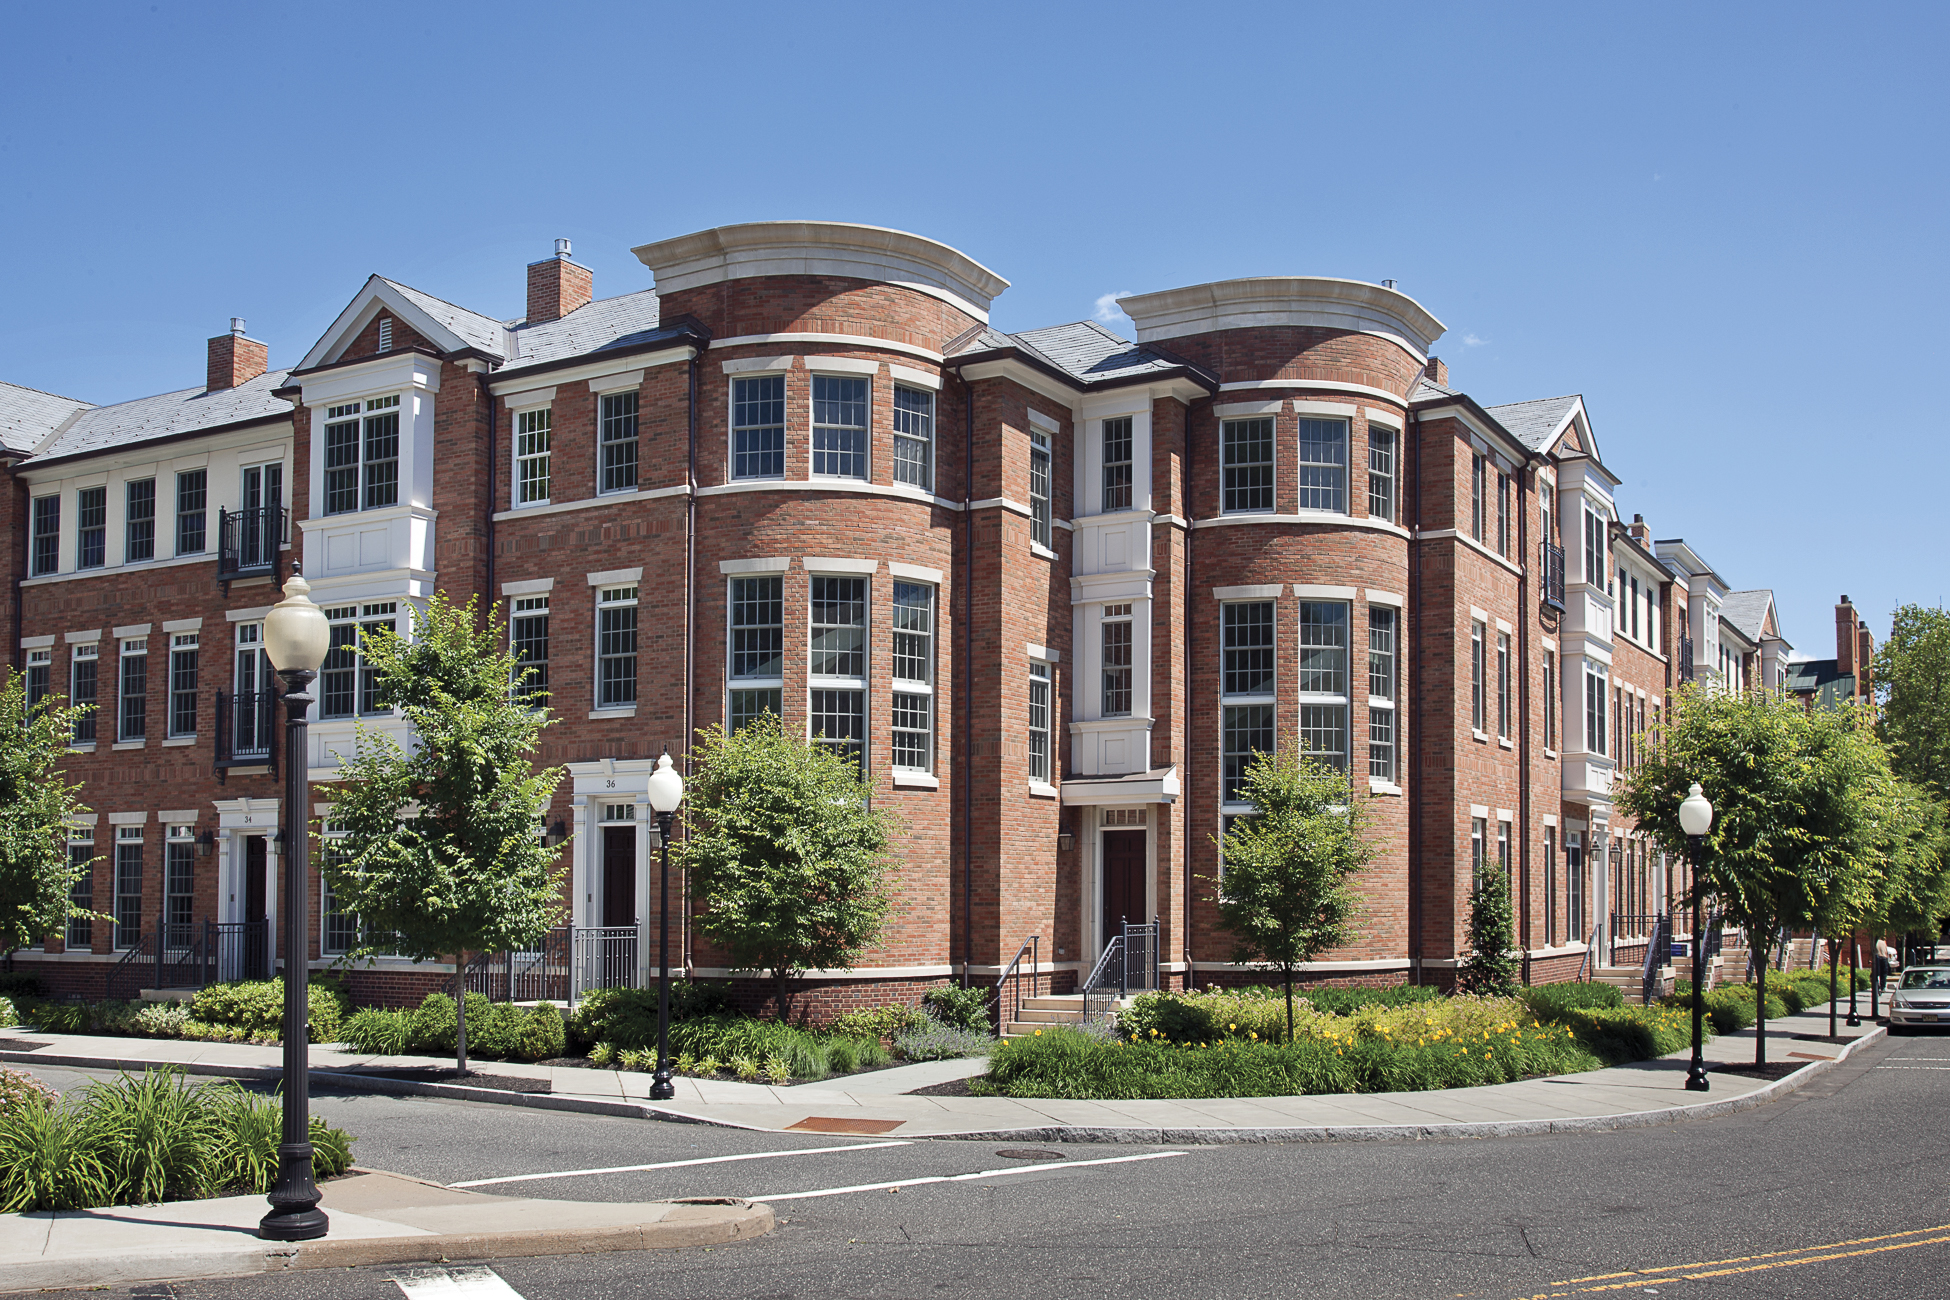 Villetta a schiera per Vendita alle ore Luxurious Townhome in the Heart of Princeton 22 Paul Robeson Place Princeton, New Jersey, 08540 Stati Uniti